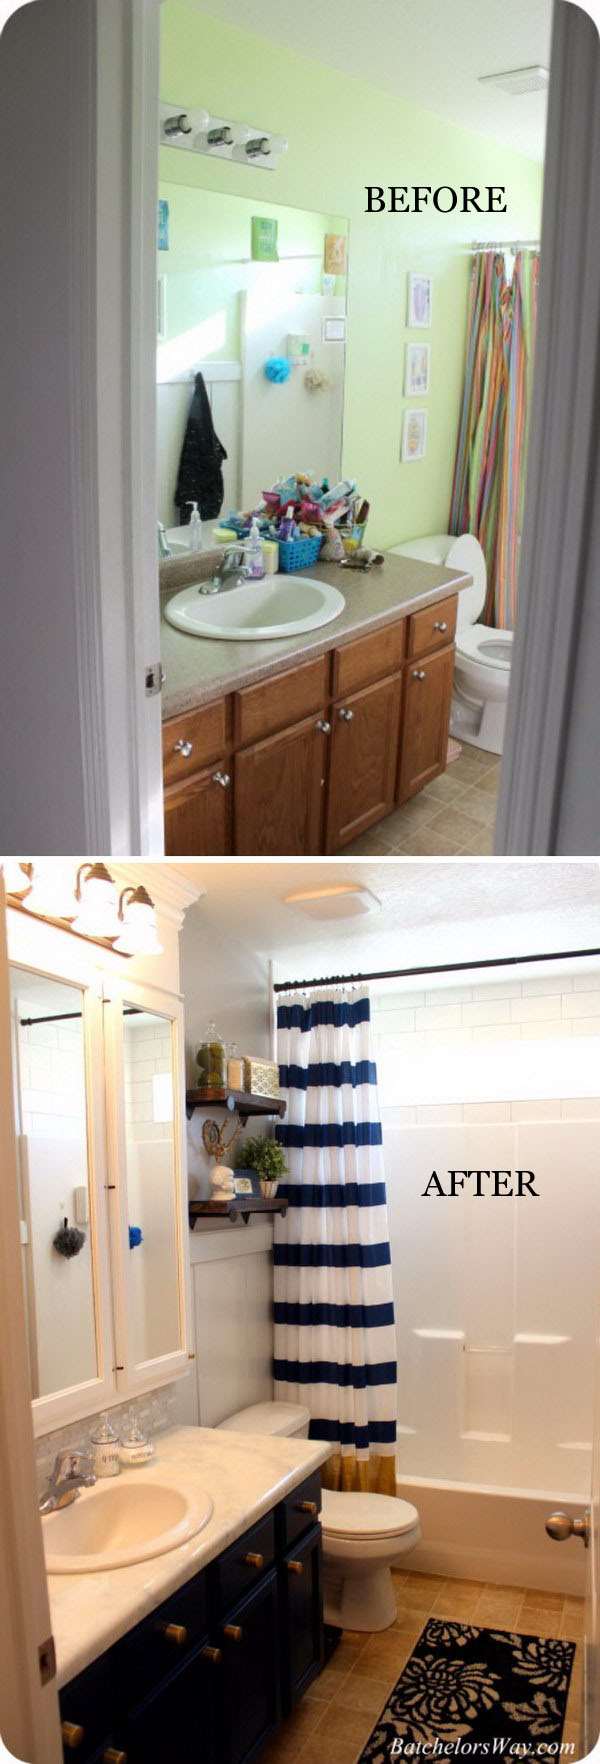 Crisp Modern Bathroom Remodel on a Budget.